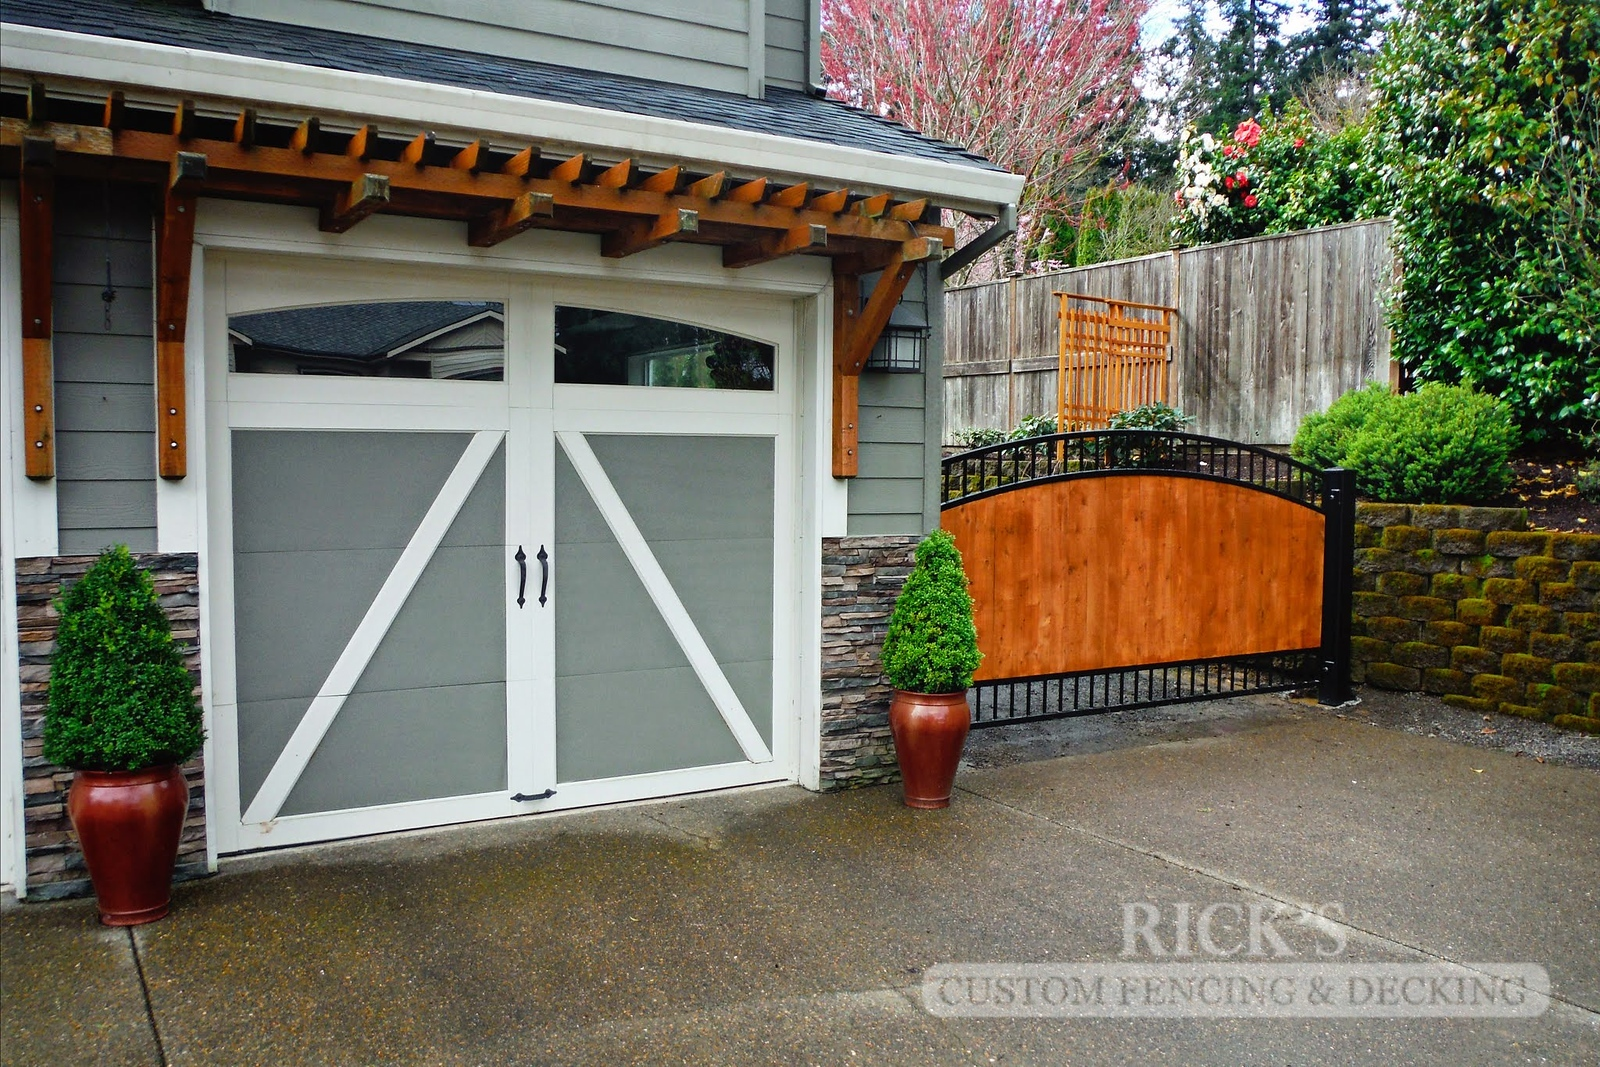 6234 - Ornamental Gate with Cedar Paneling